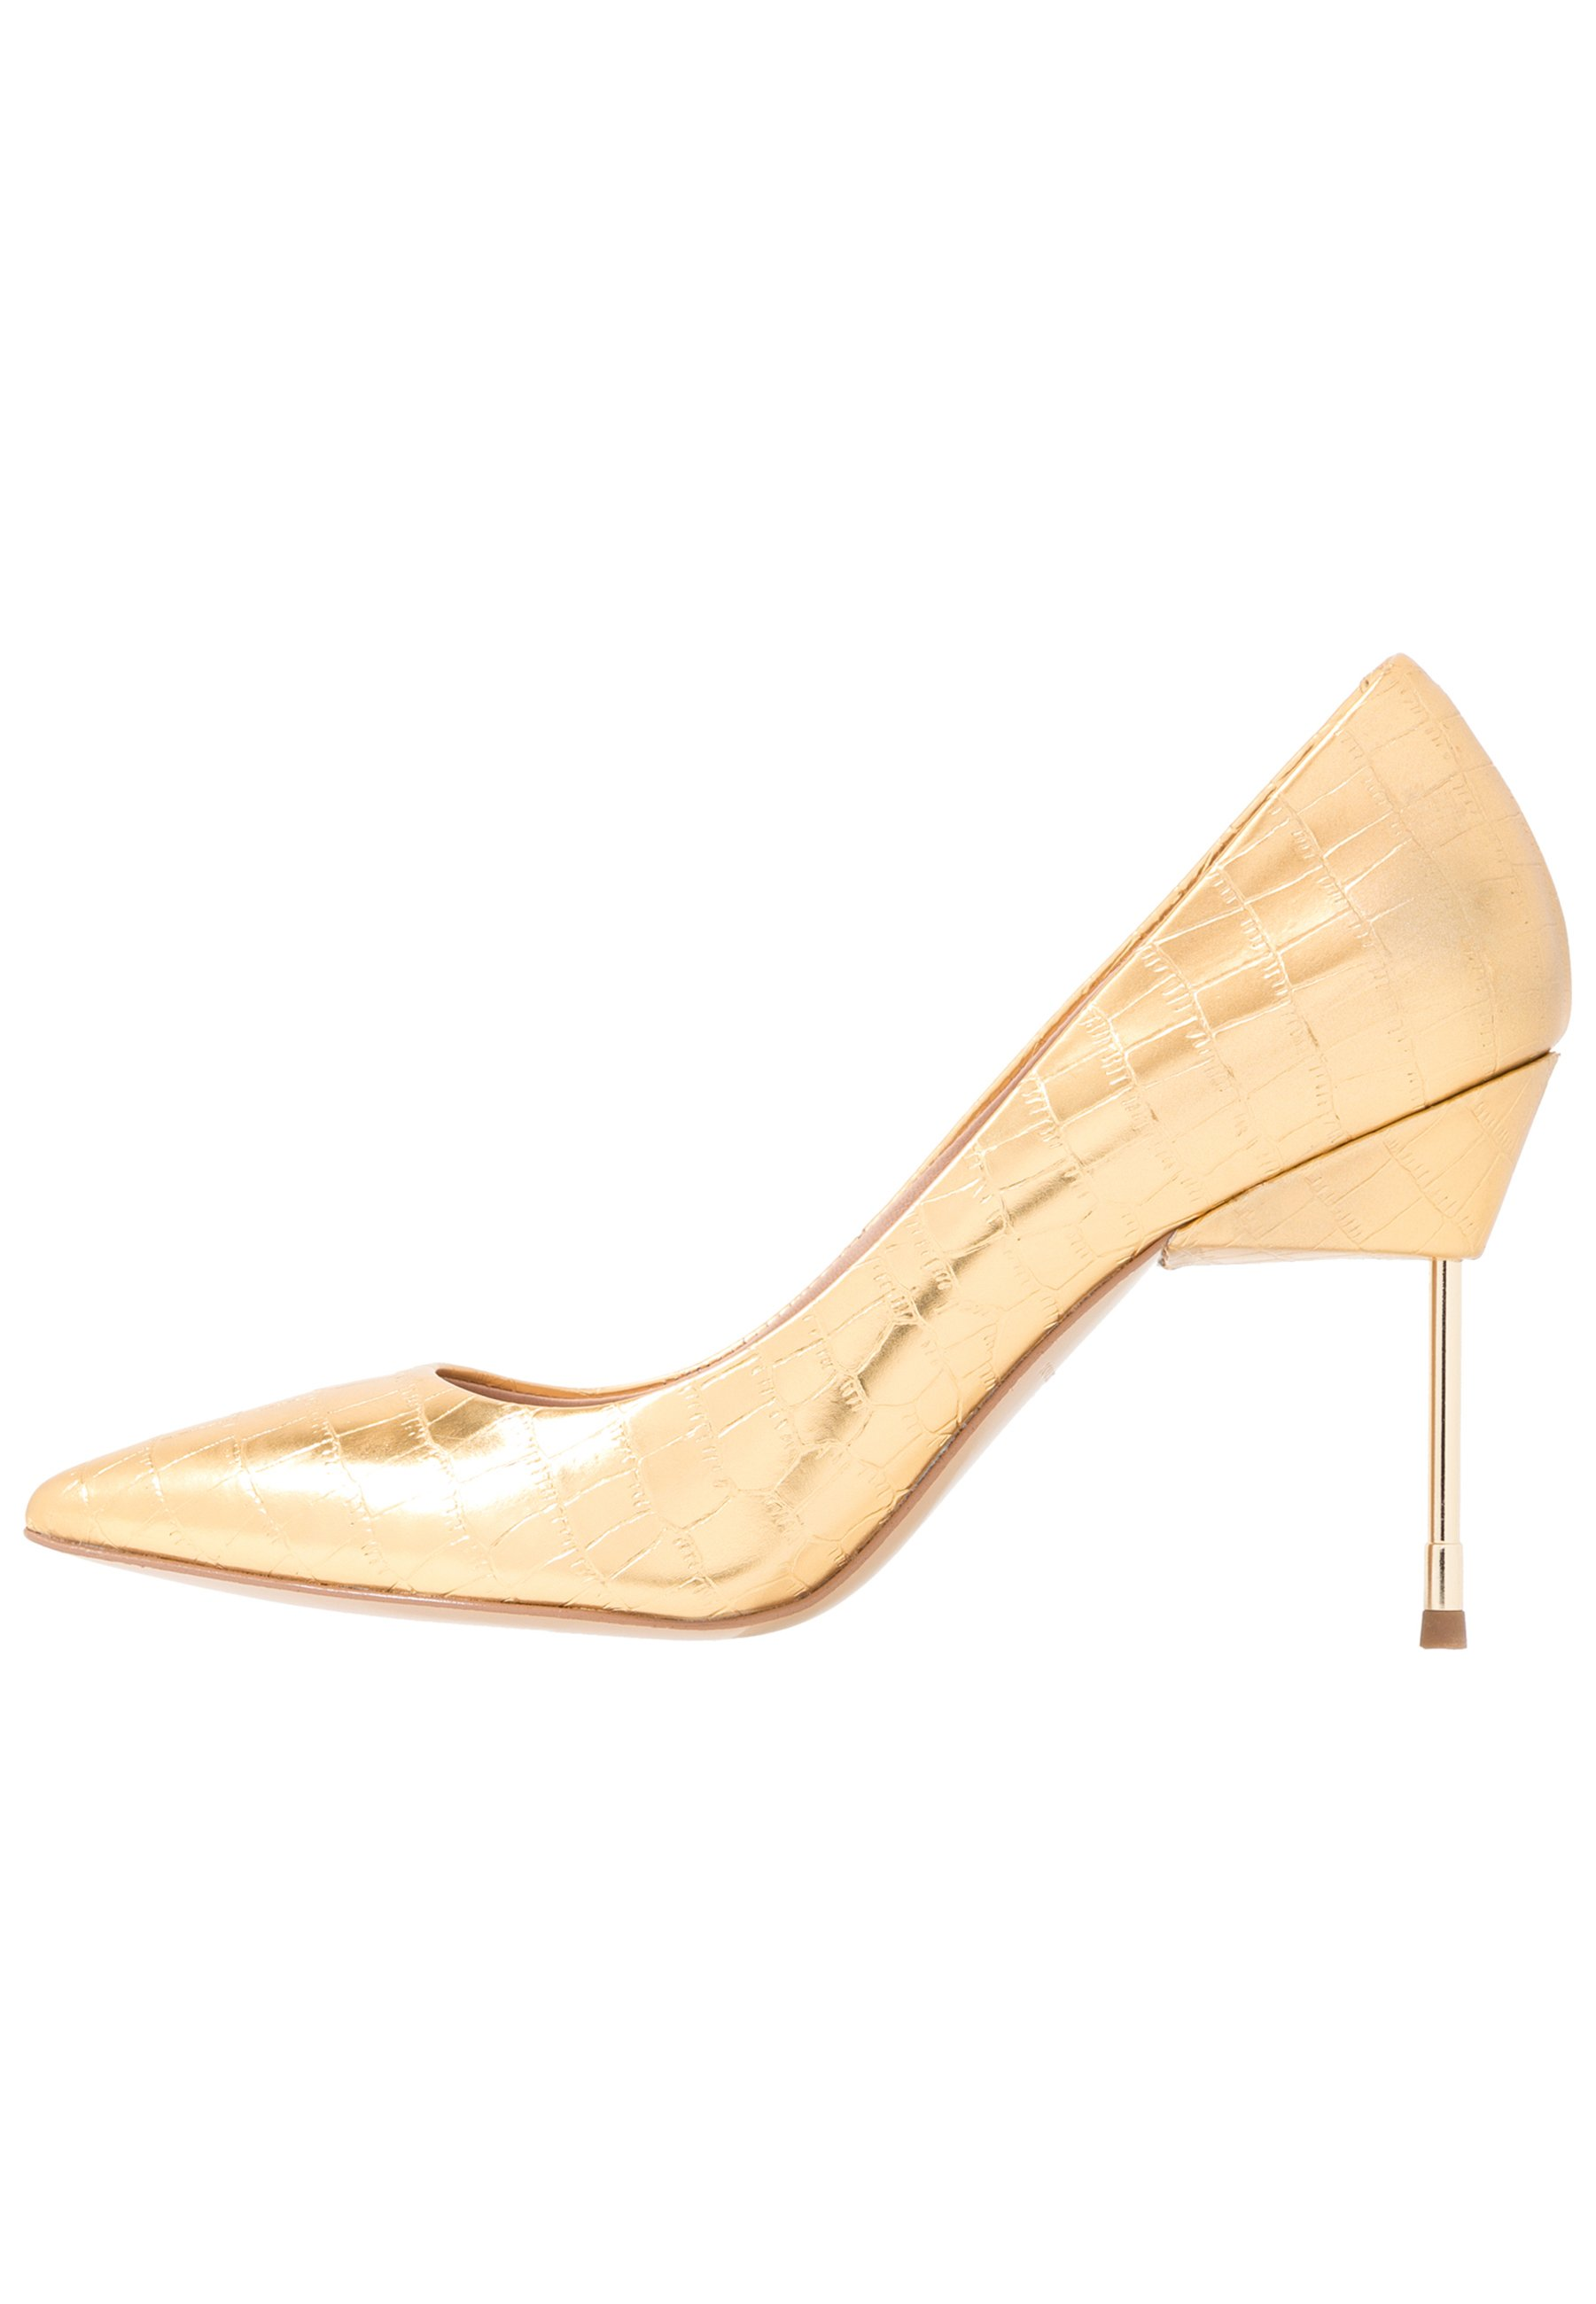 Kurt Geiger London BRITTON - Zapatos altos nude